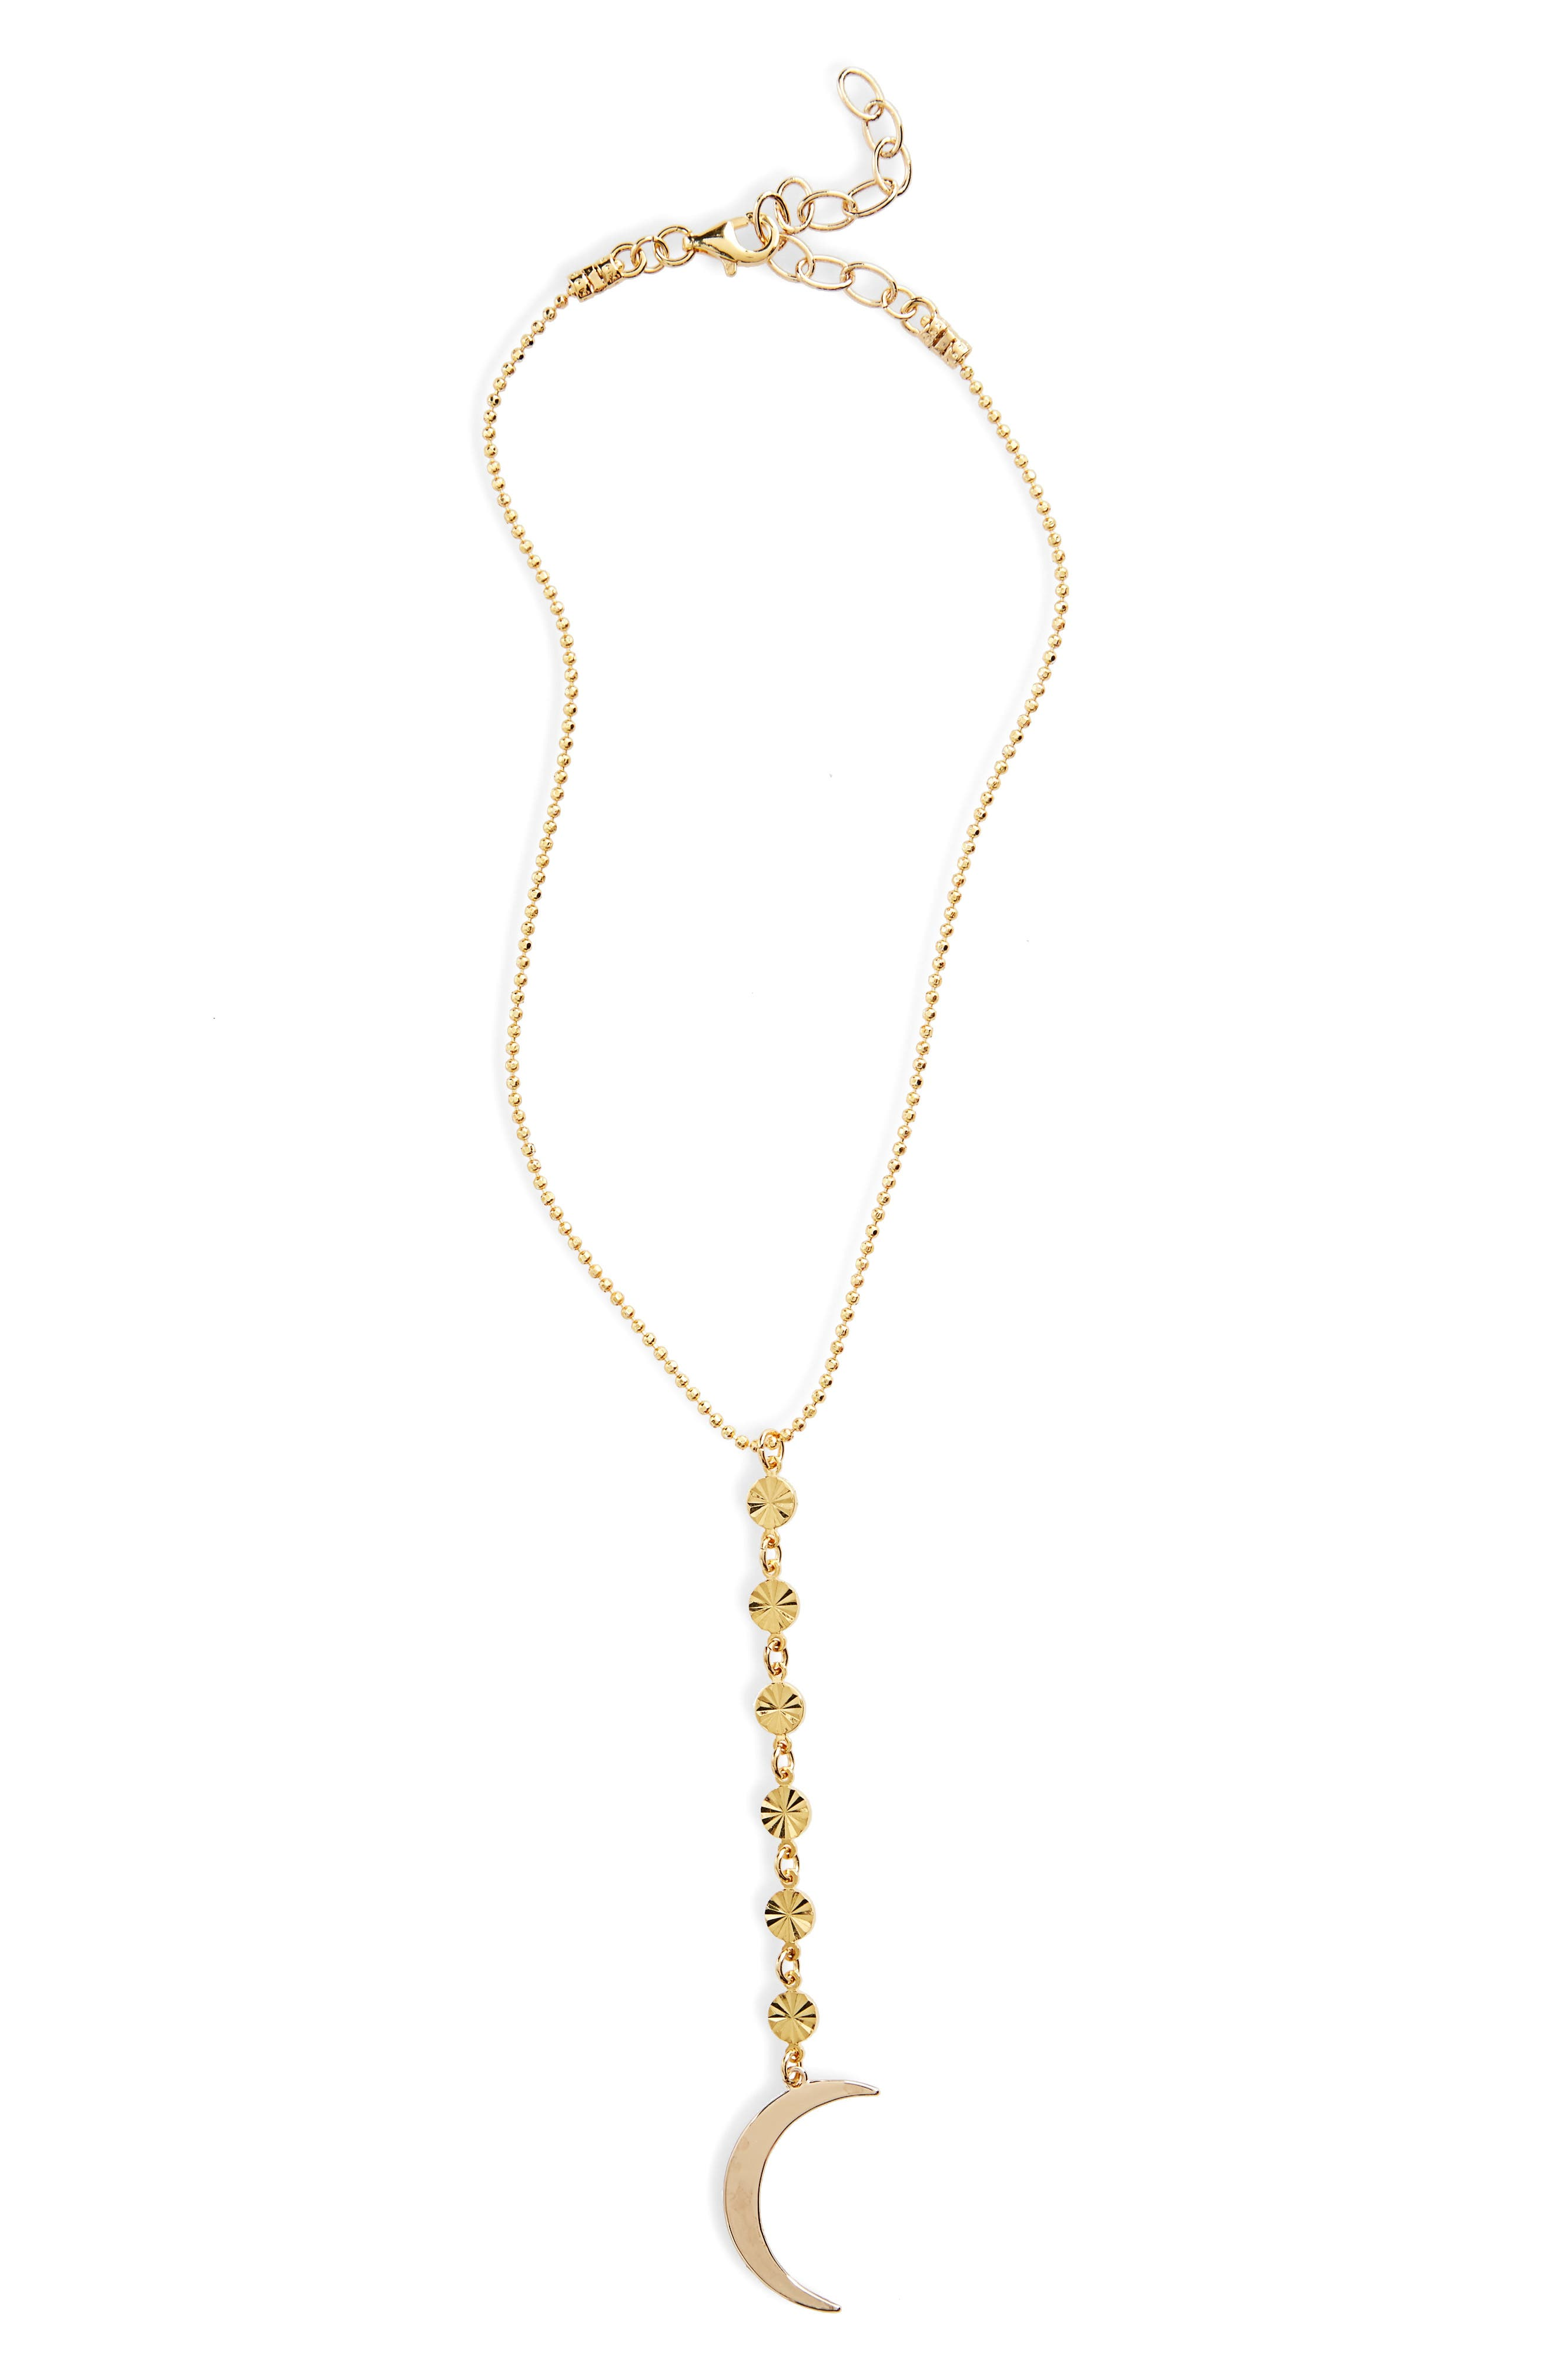 FRASIER STERLING To the Moon Y-Necklace